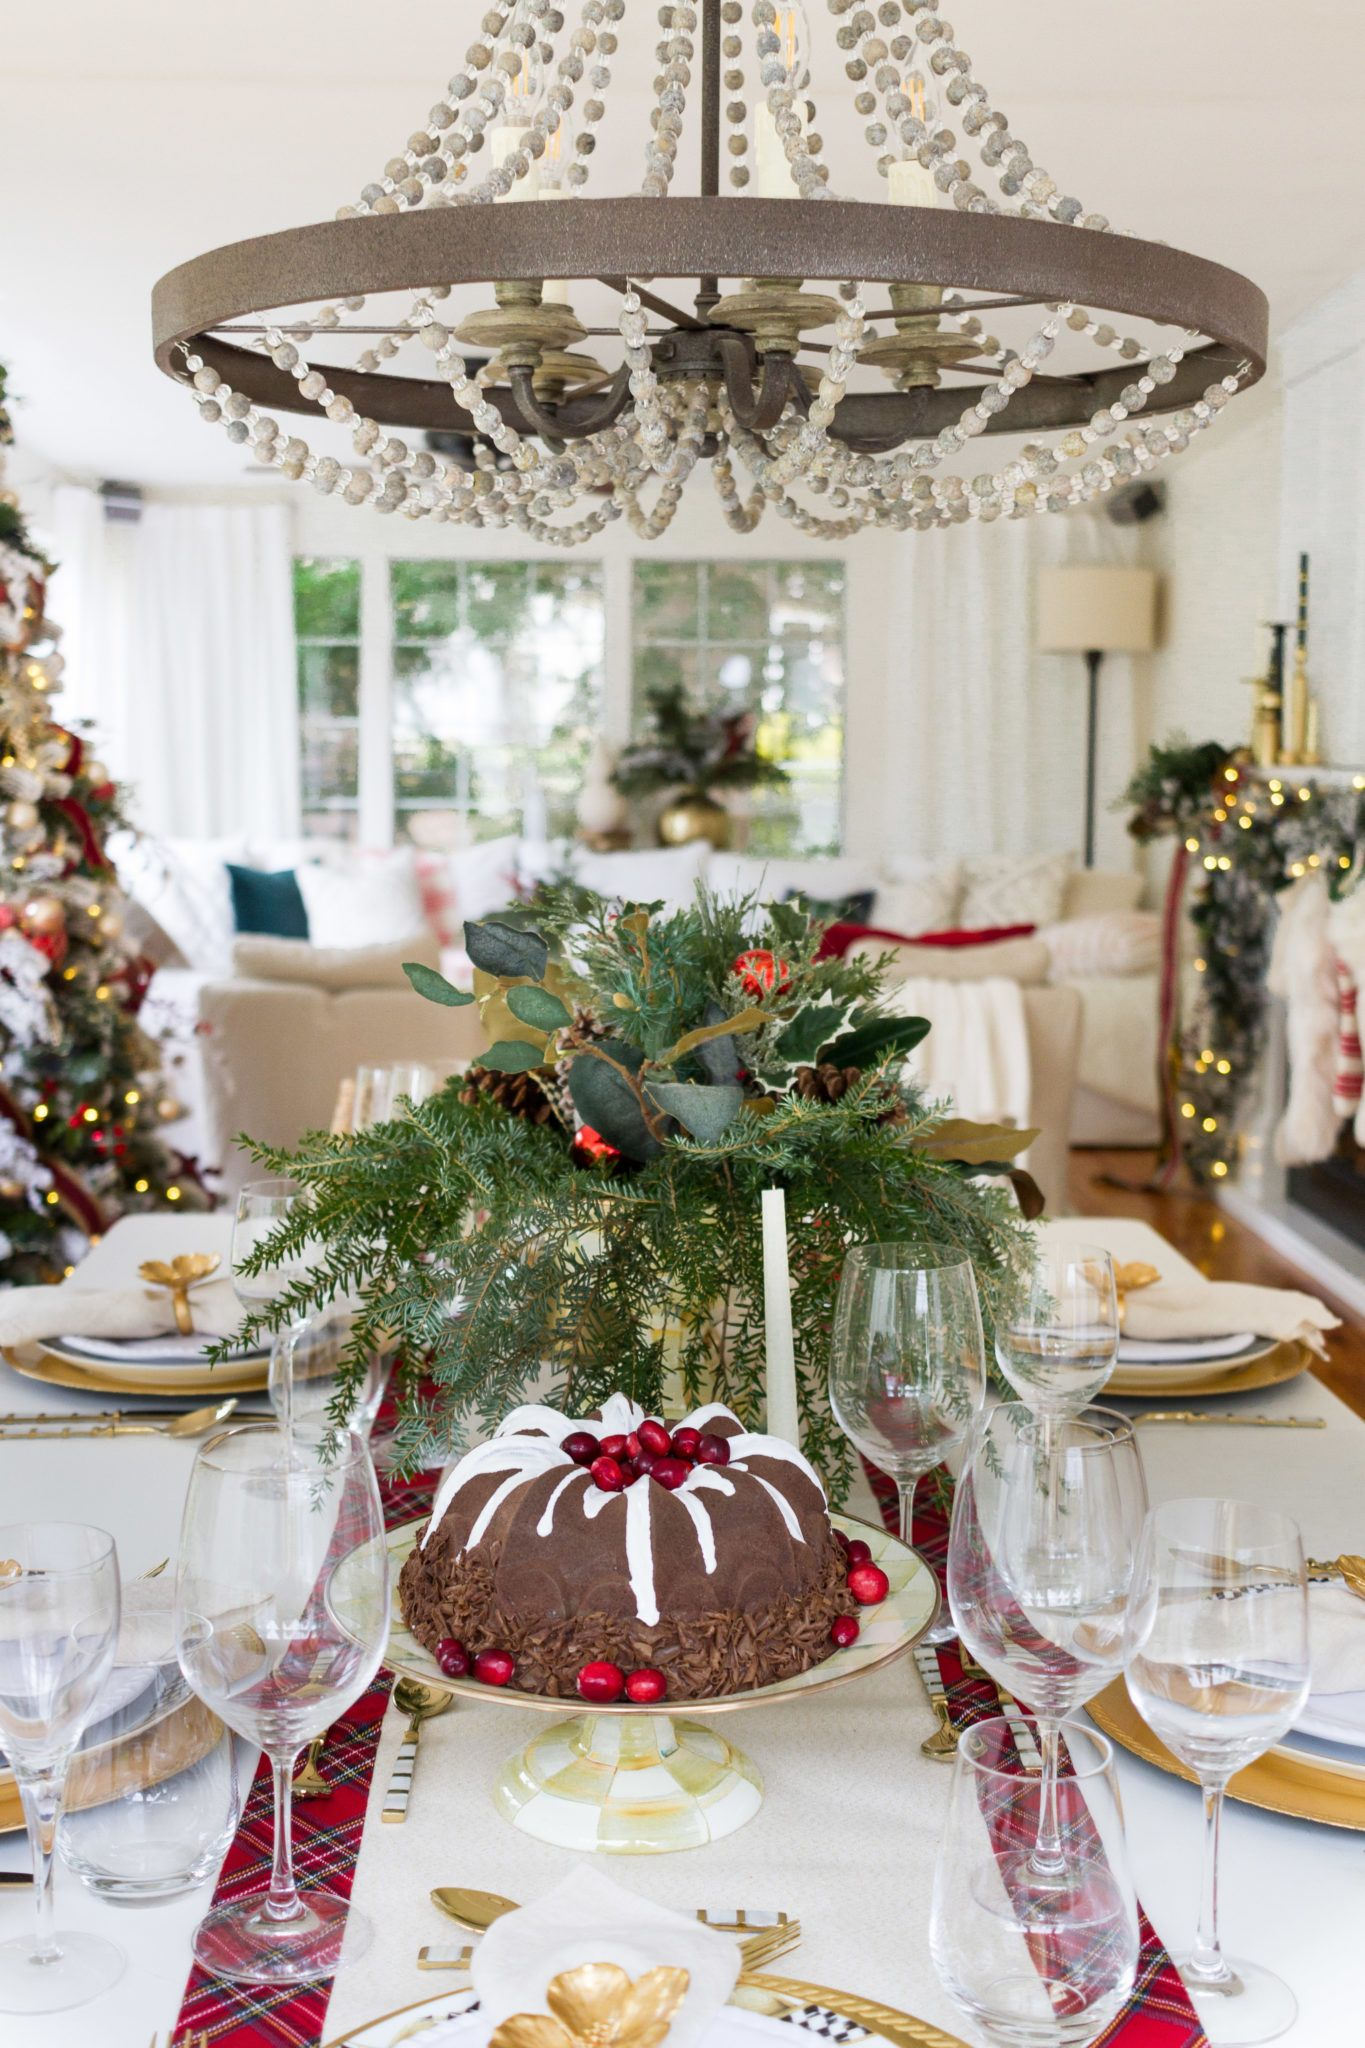 Home For Christmas Tips For Seasonal Decorating Christmas Home Christmas Table Decorations Christmas Centerpieces